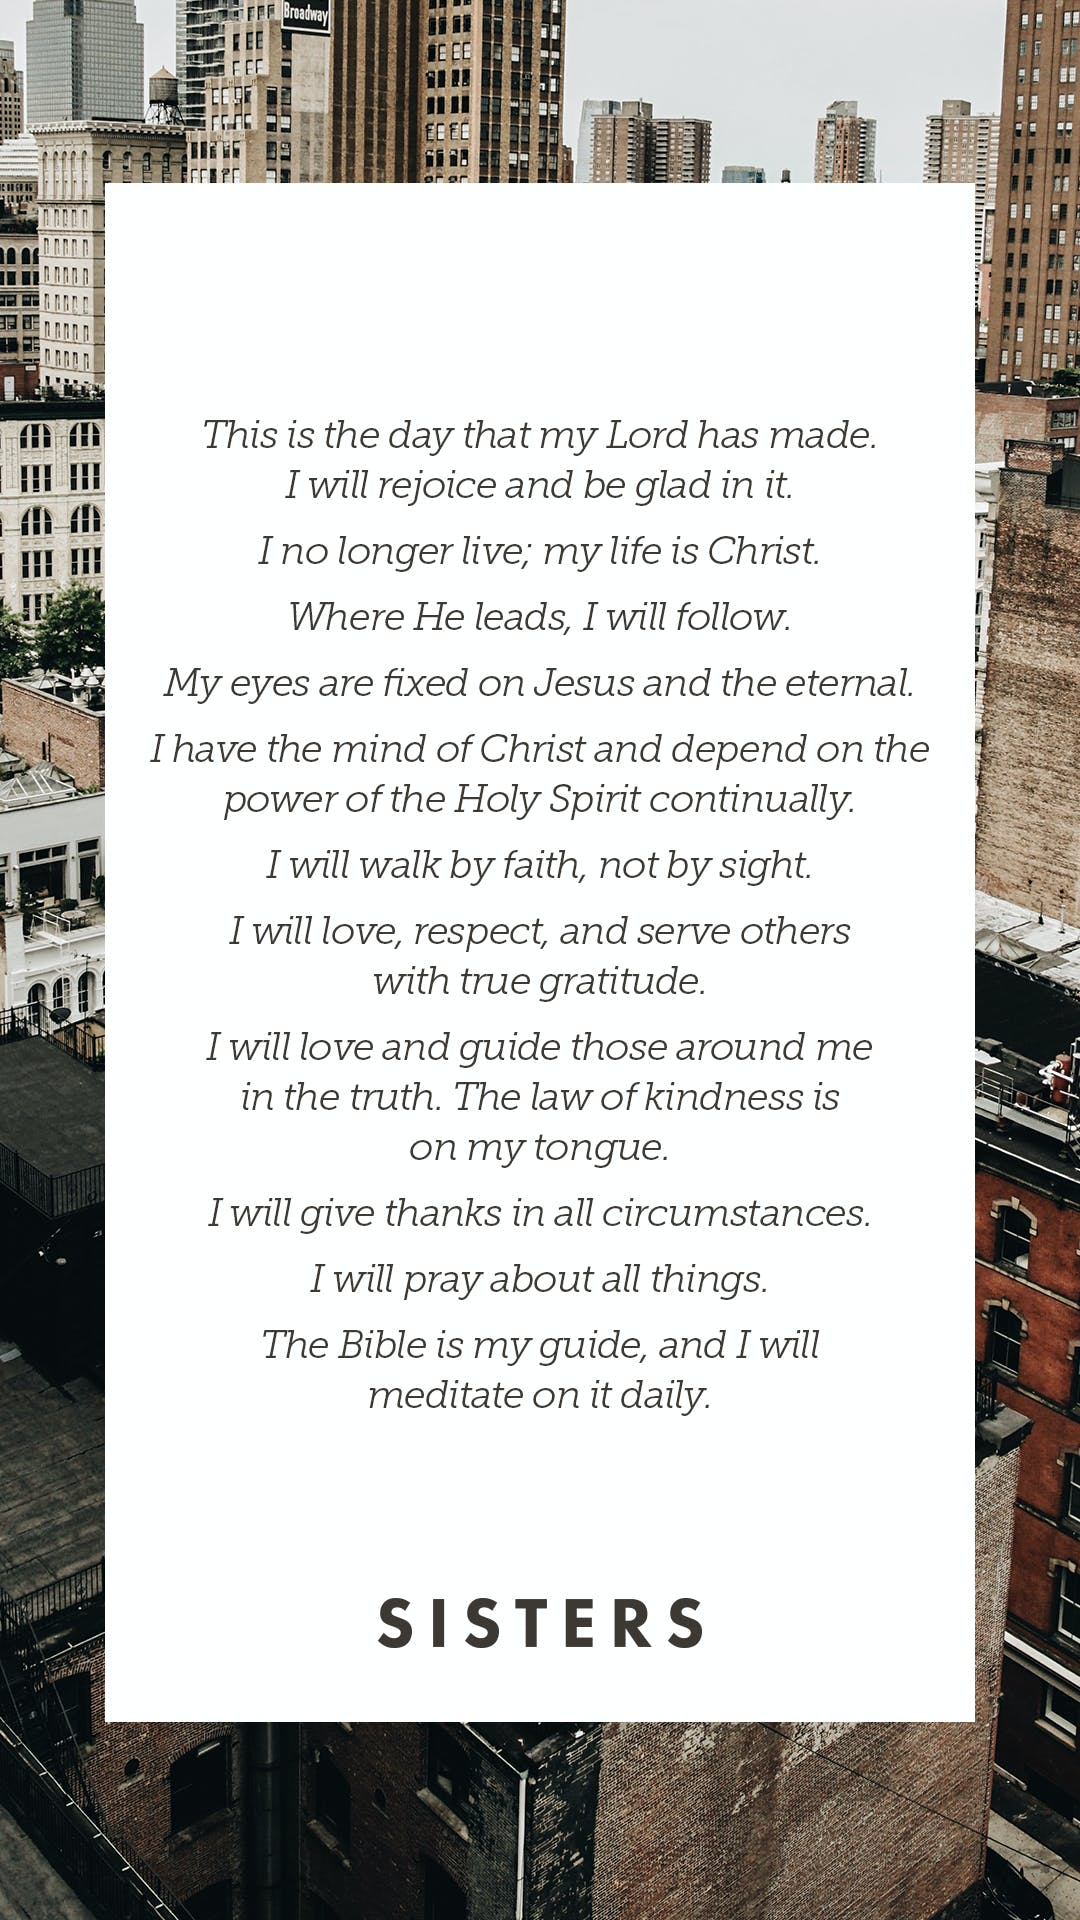 Amy Groeschel's Daily Affirmations